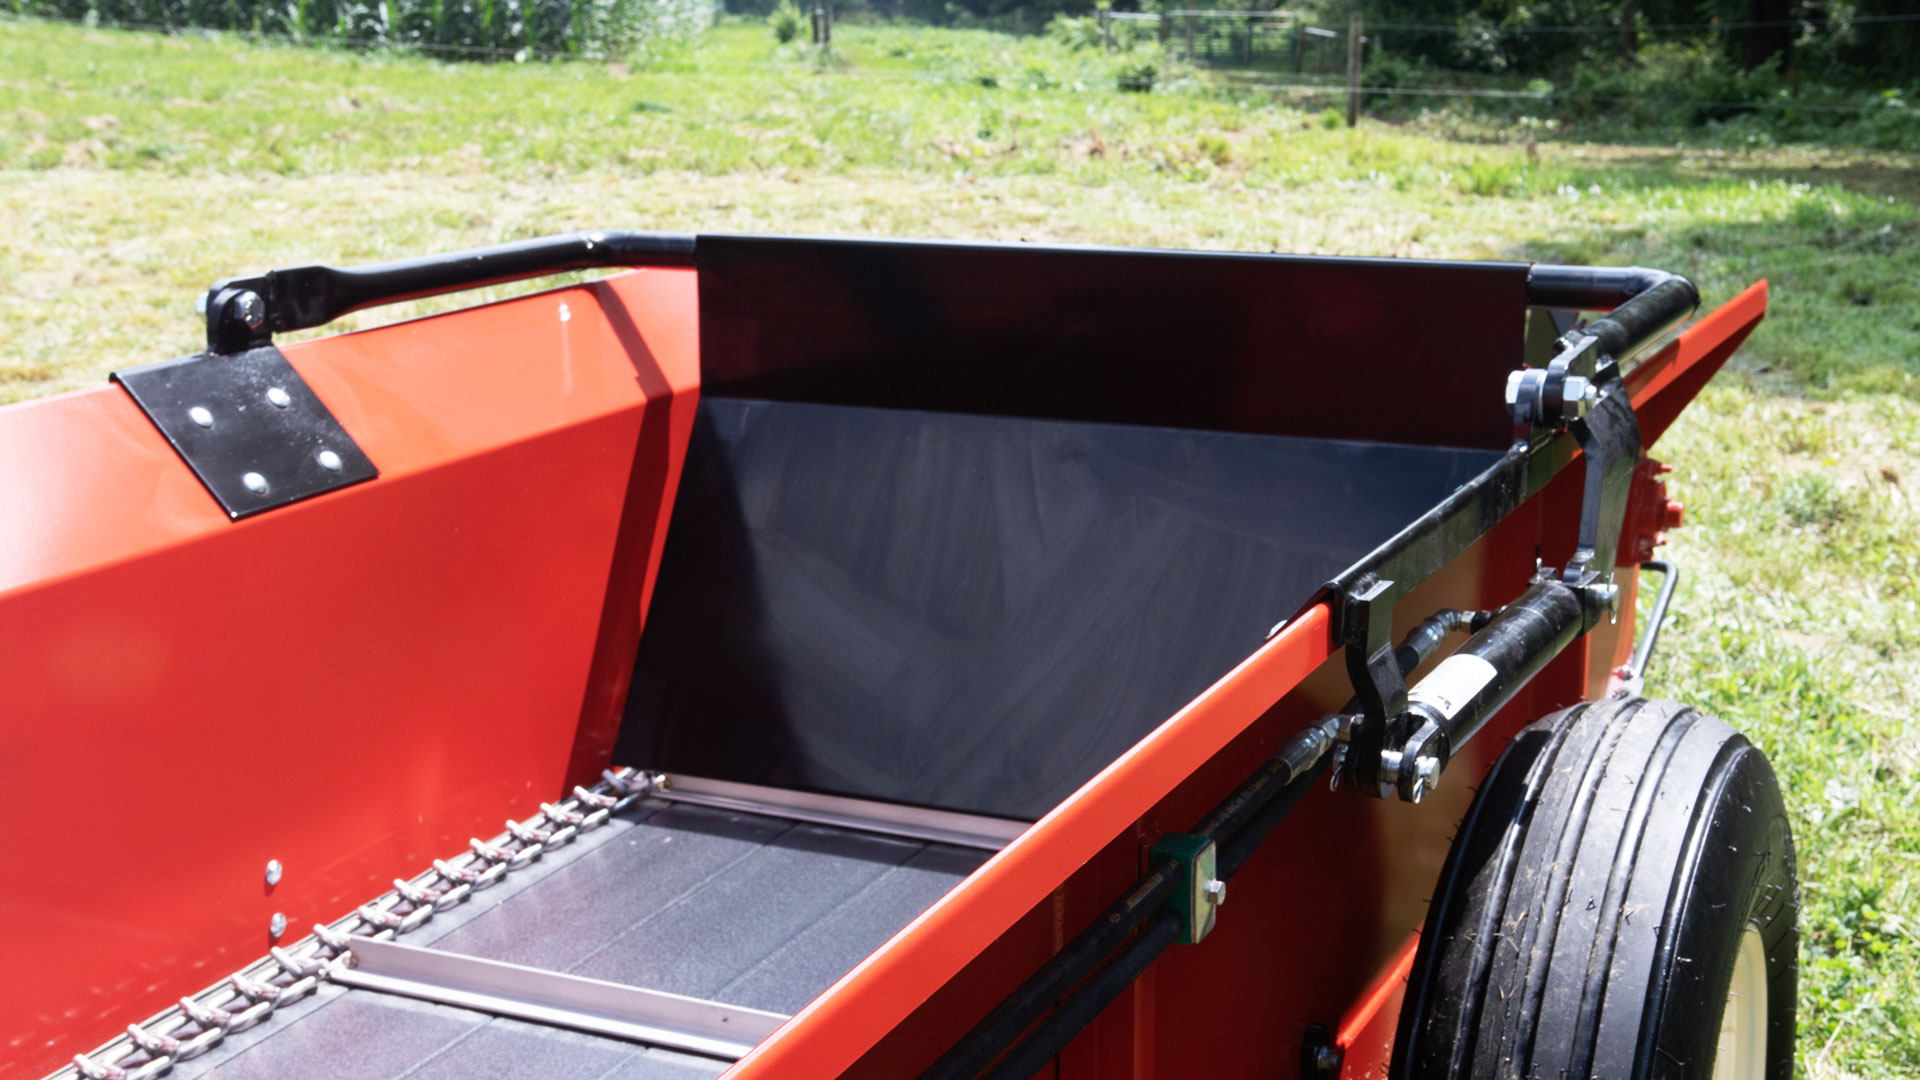 PTO Horse manure spreader with optional hydraulic end gate.